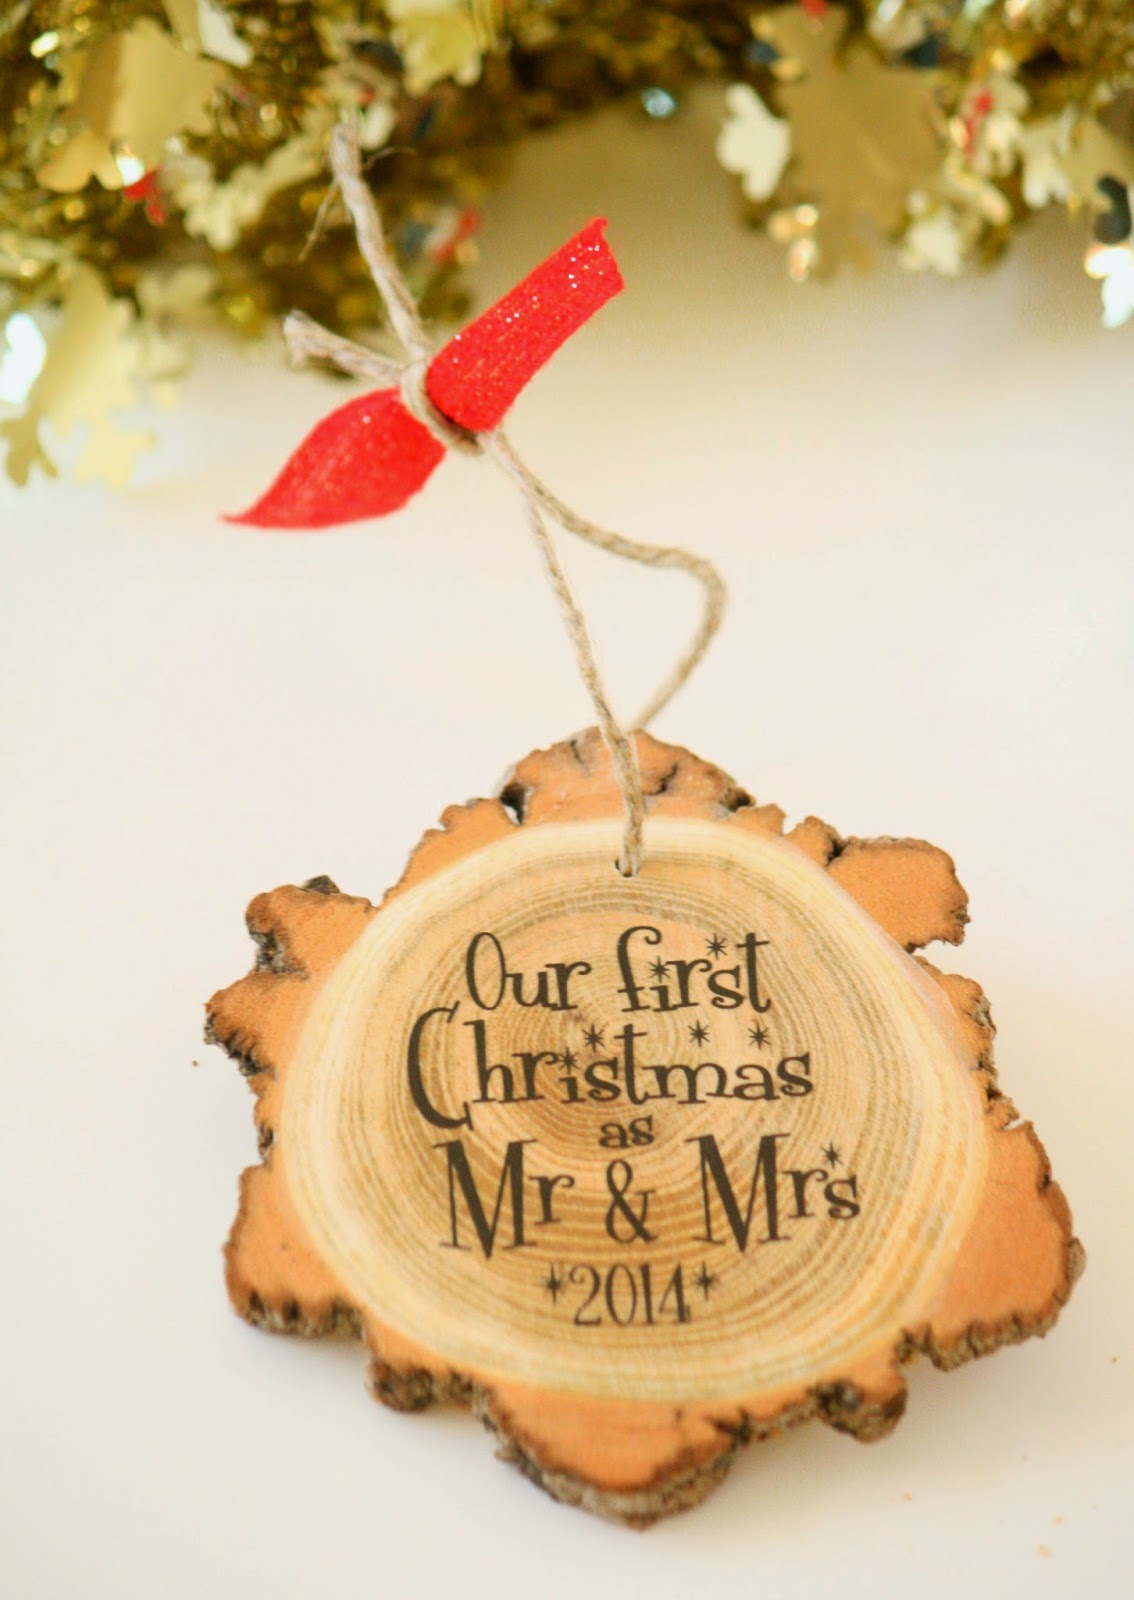 Our First Christmas as Mr & Mrs - NEW Modern Christmas ...